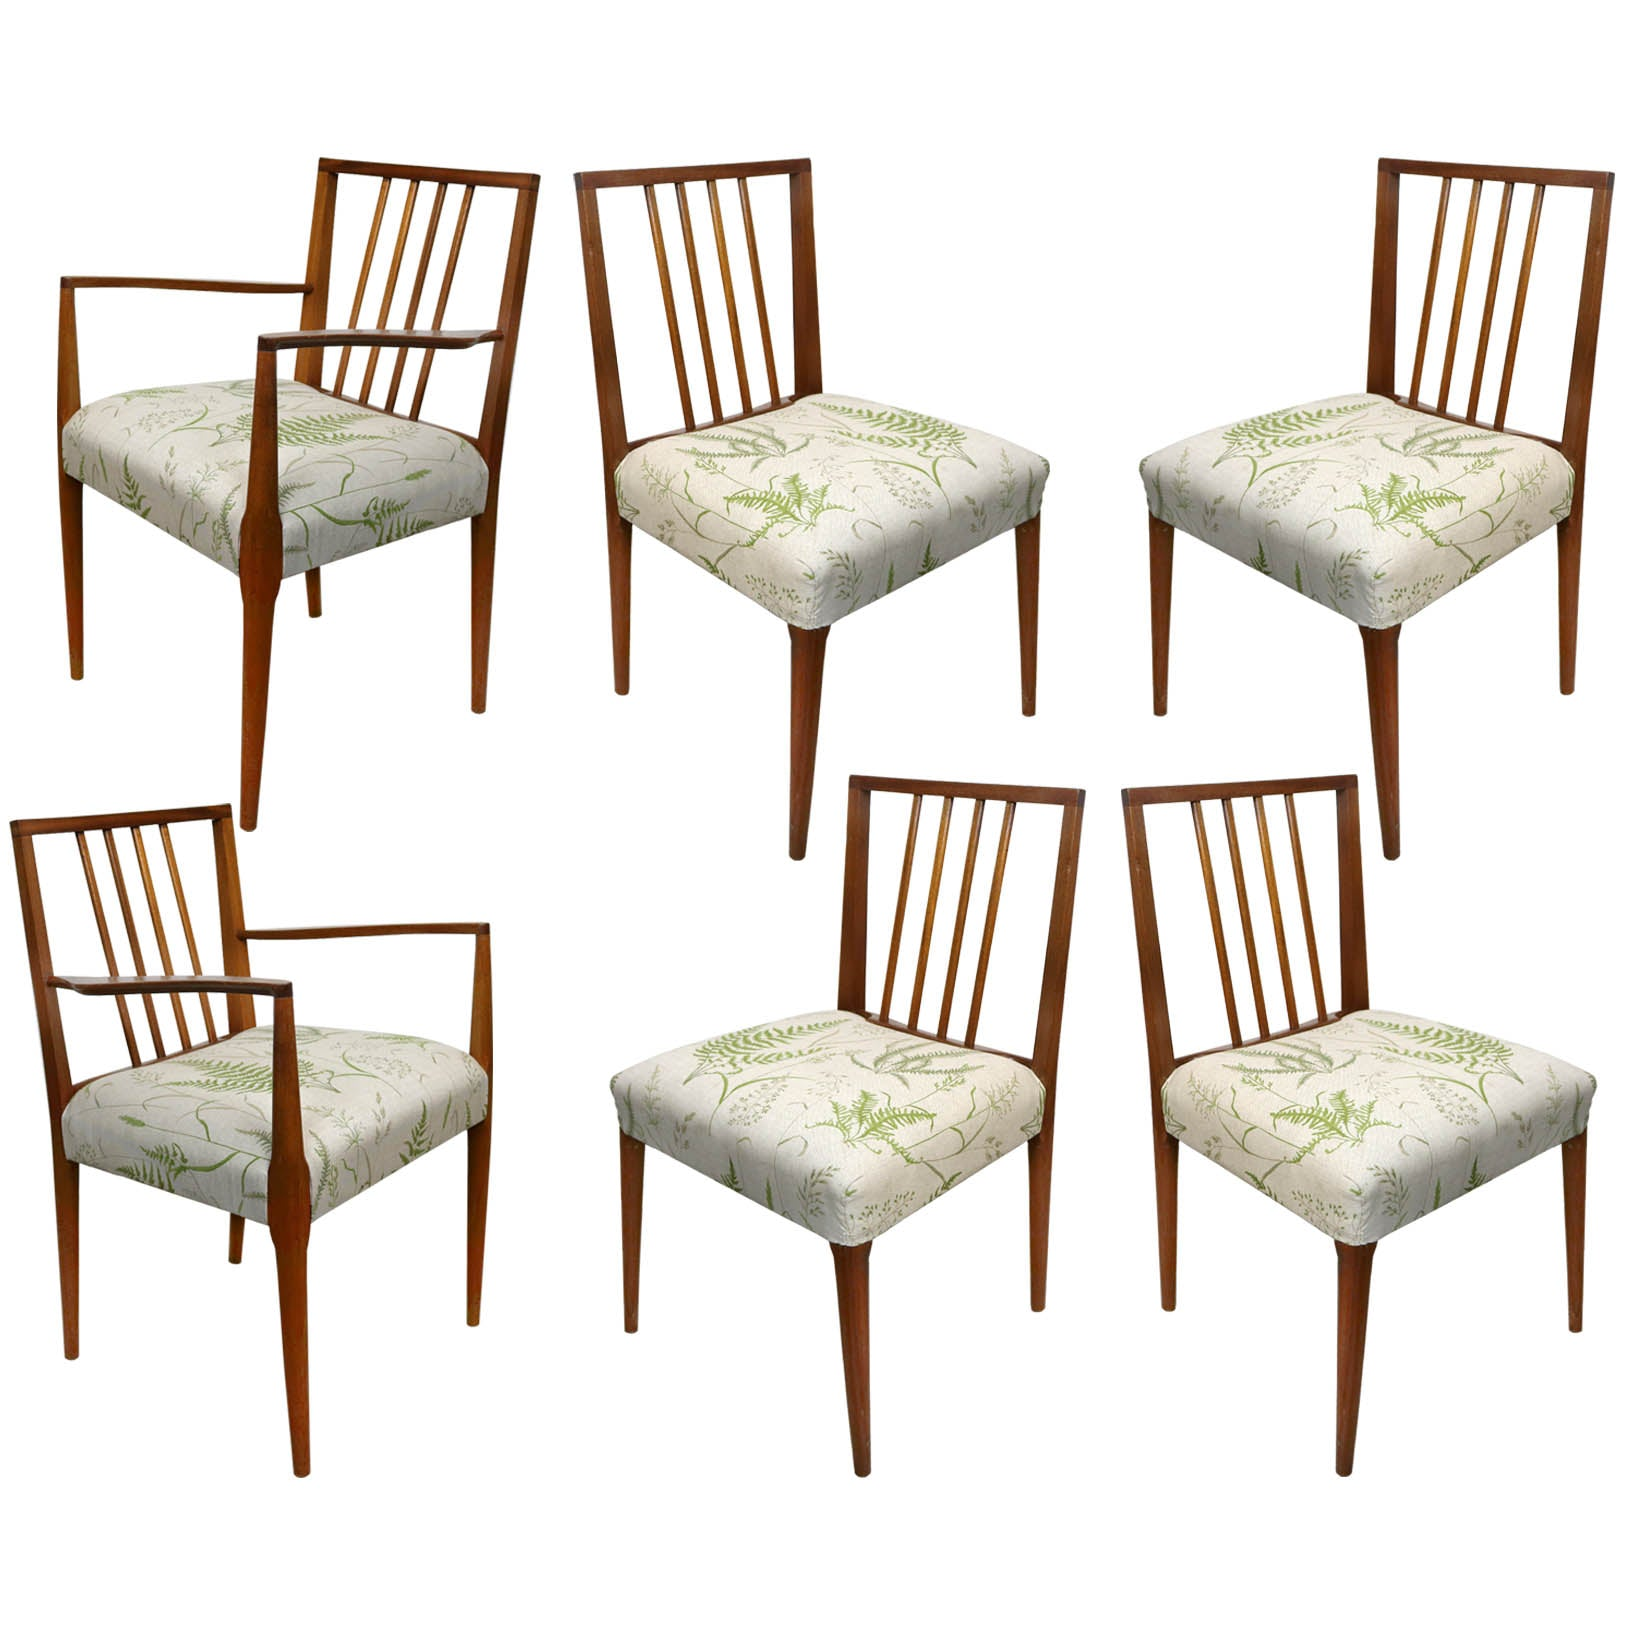 Set of 6 Mid Century Fern Botanical Leaf Print Teak Chairs